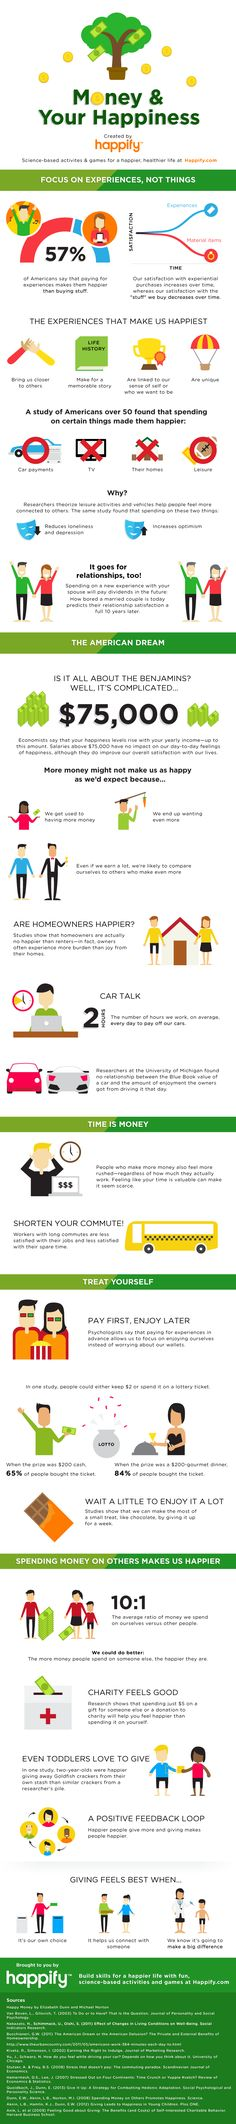 Infographic: Apparently money can buy you happiness, after all!